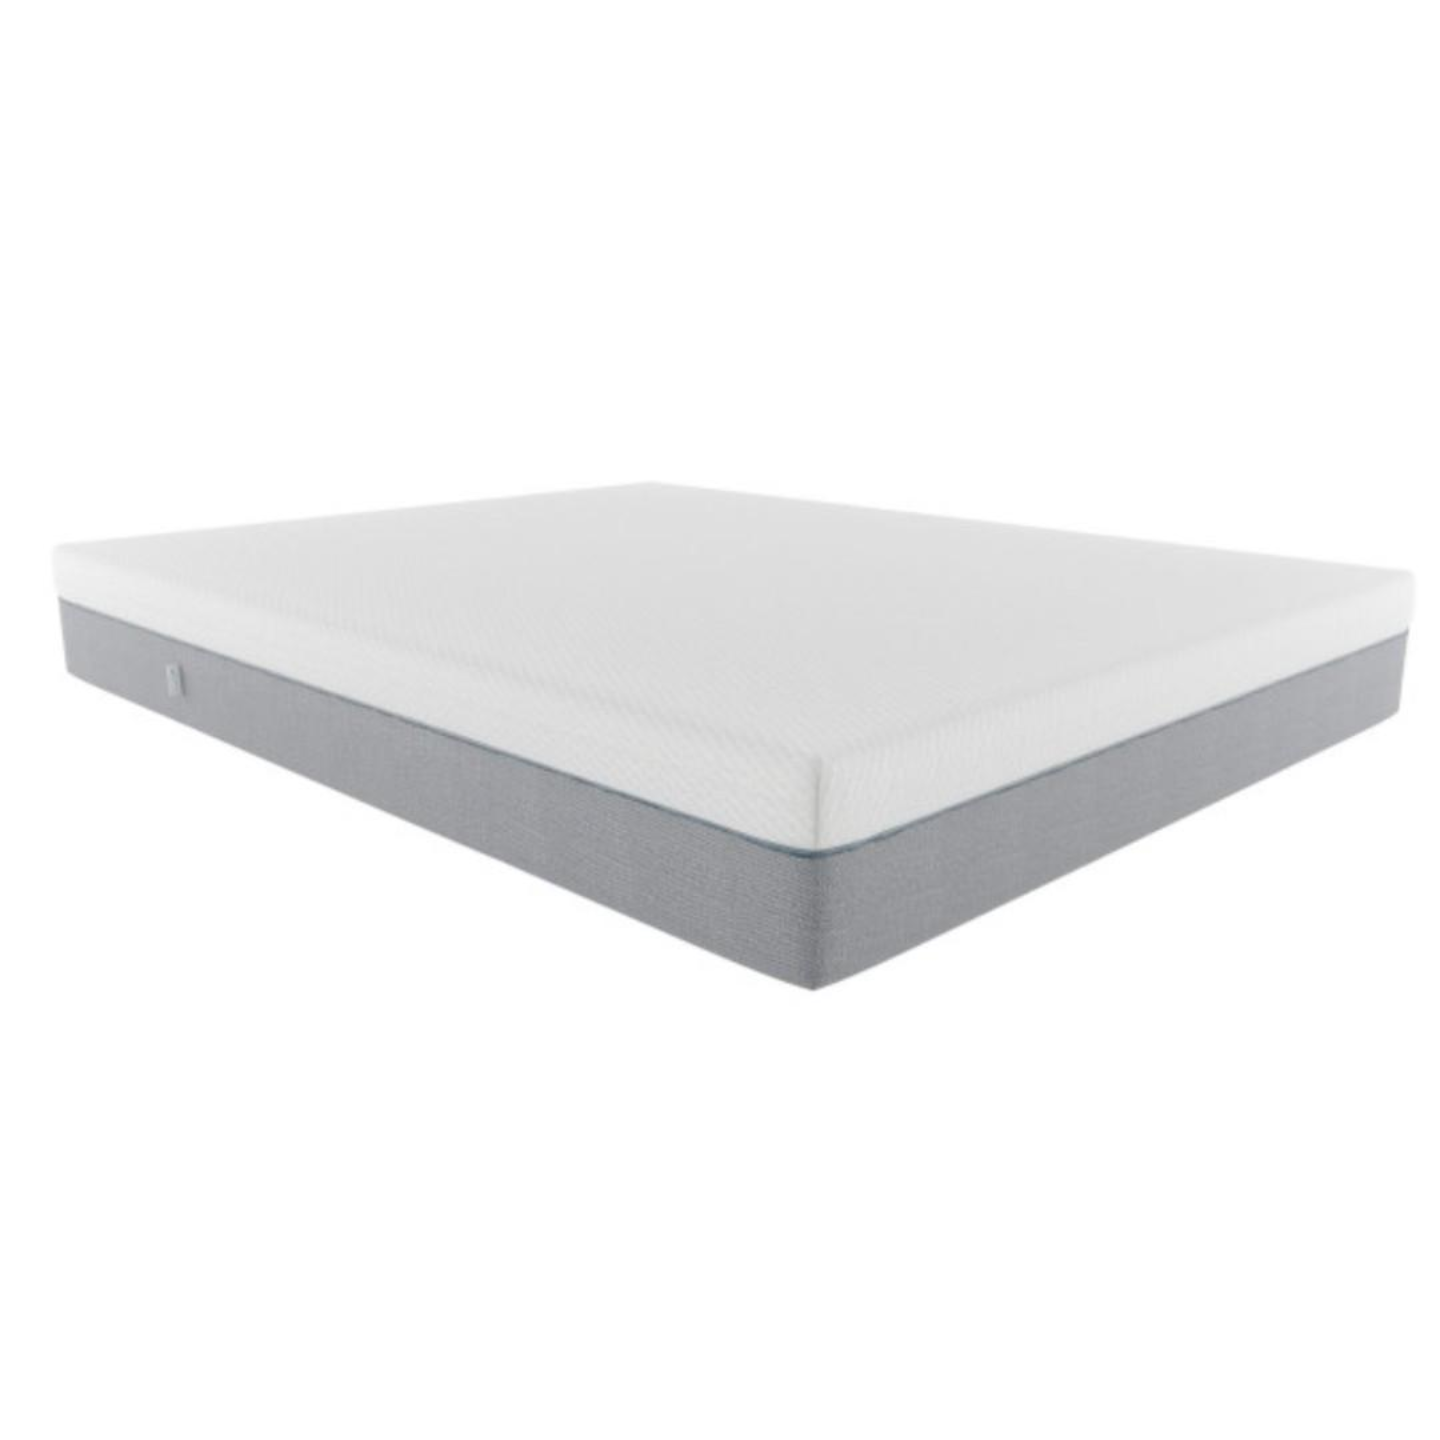 Super Single Cool Gel Memory Foam Mattress